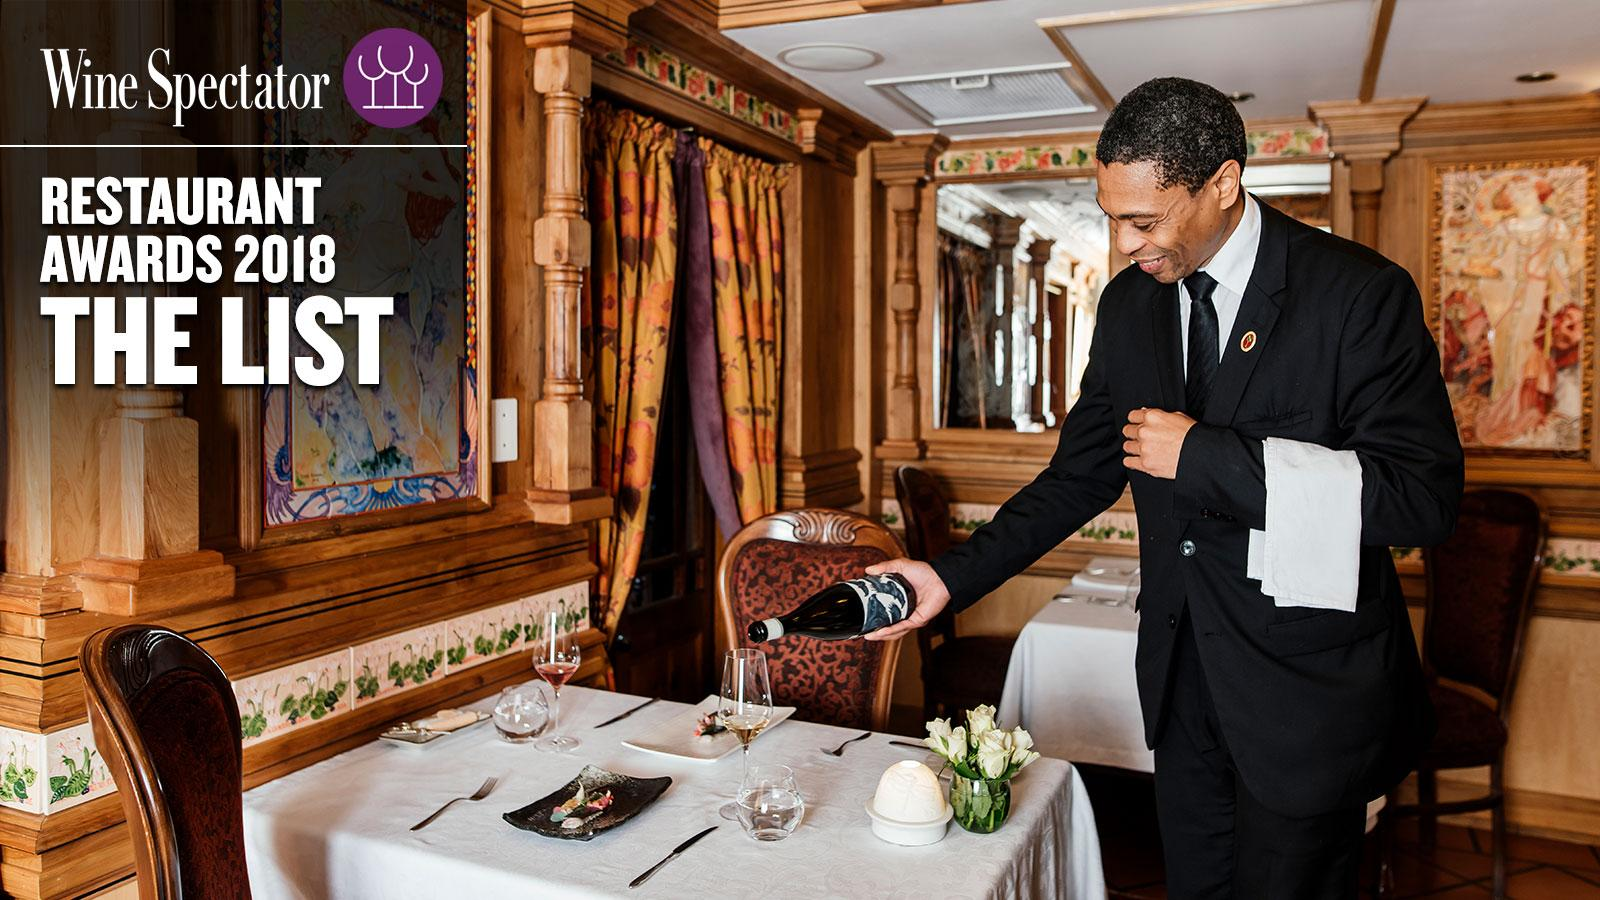 Find the Best Restaurants for Wine Lovers!